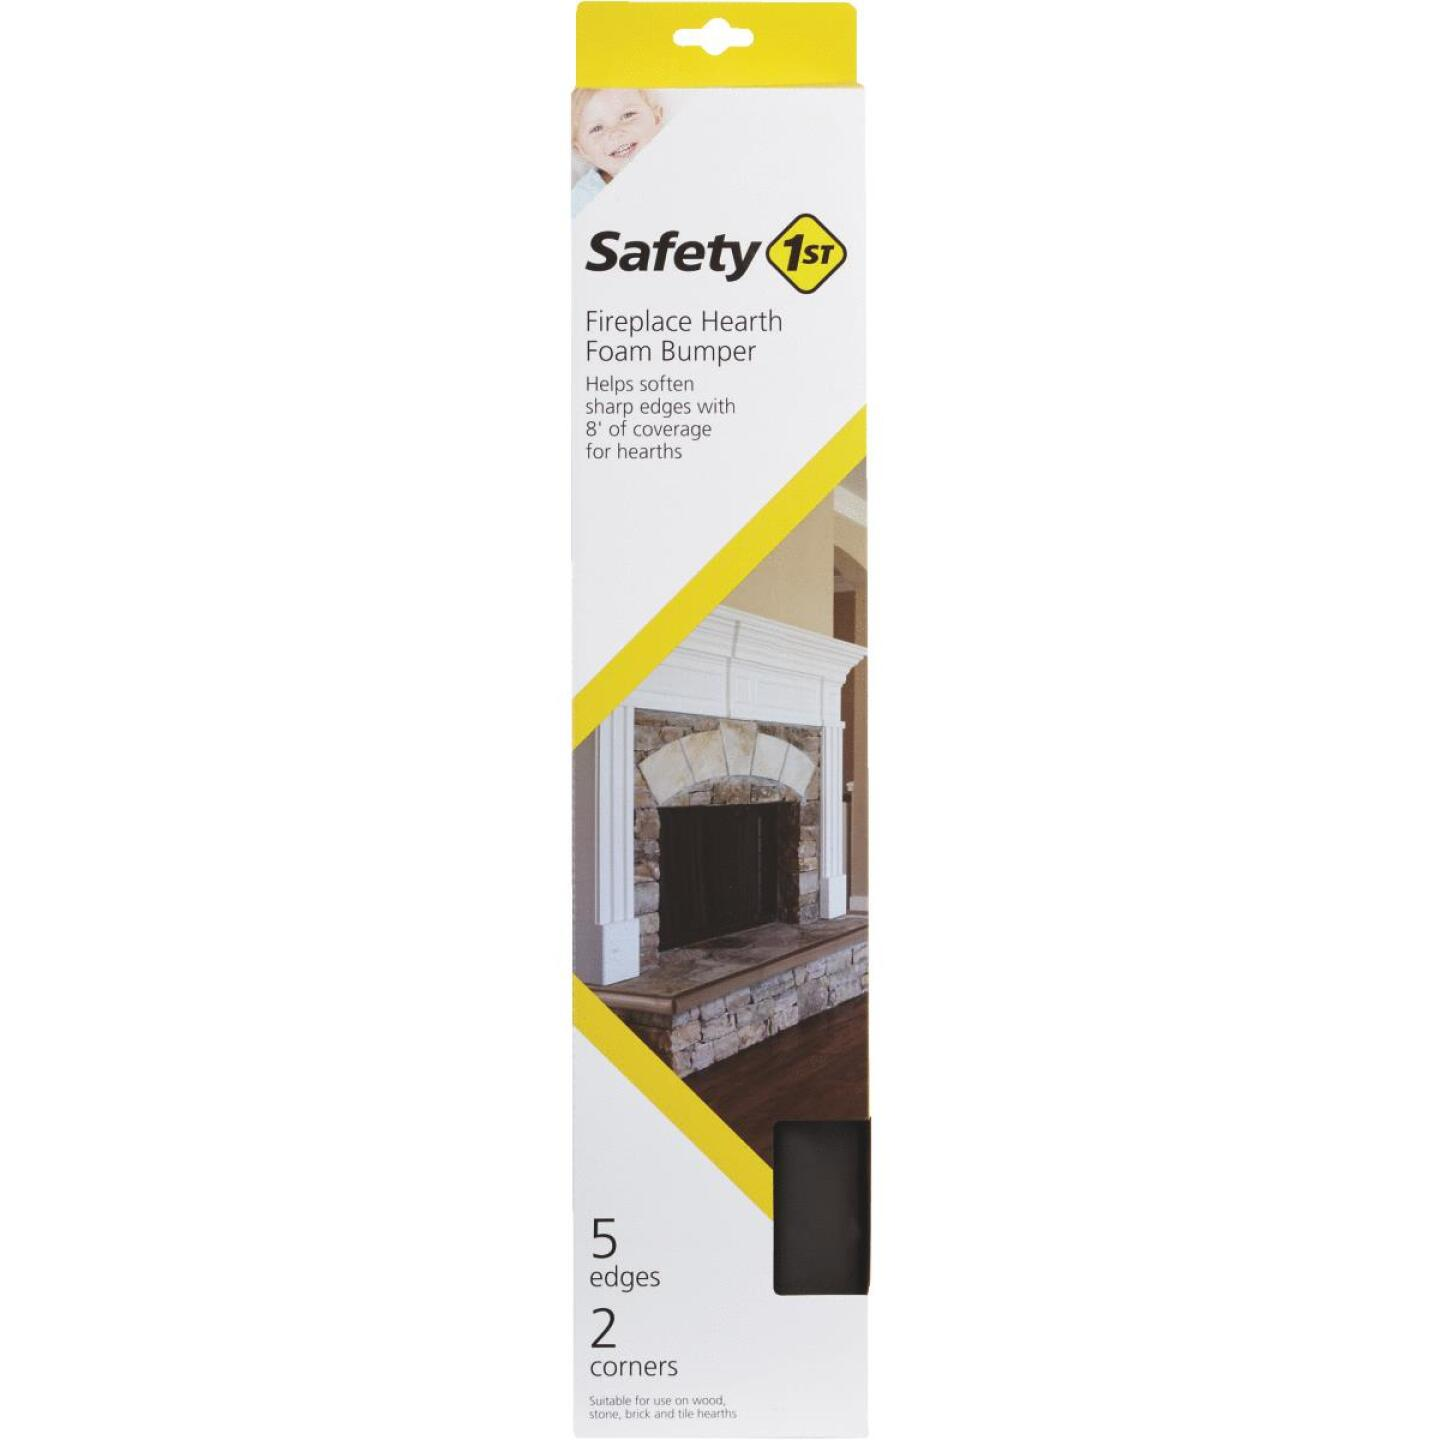 Safety 1st Adhesive Foam Brown Fireplace Guard Foam Bumper Image 2